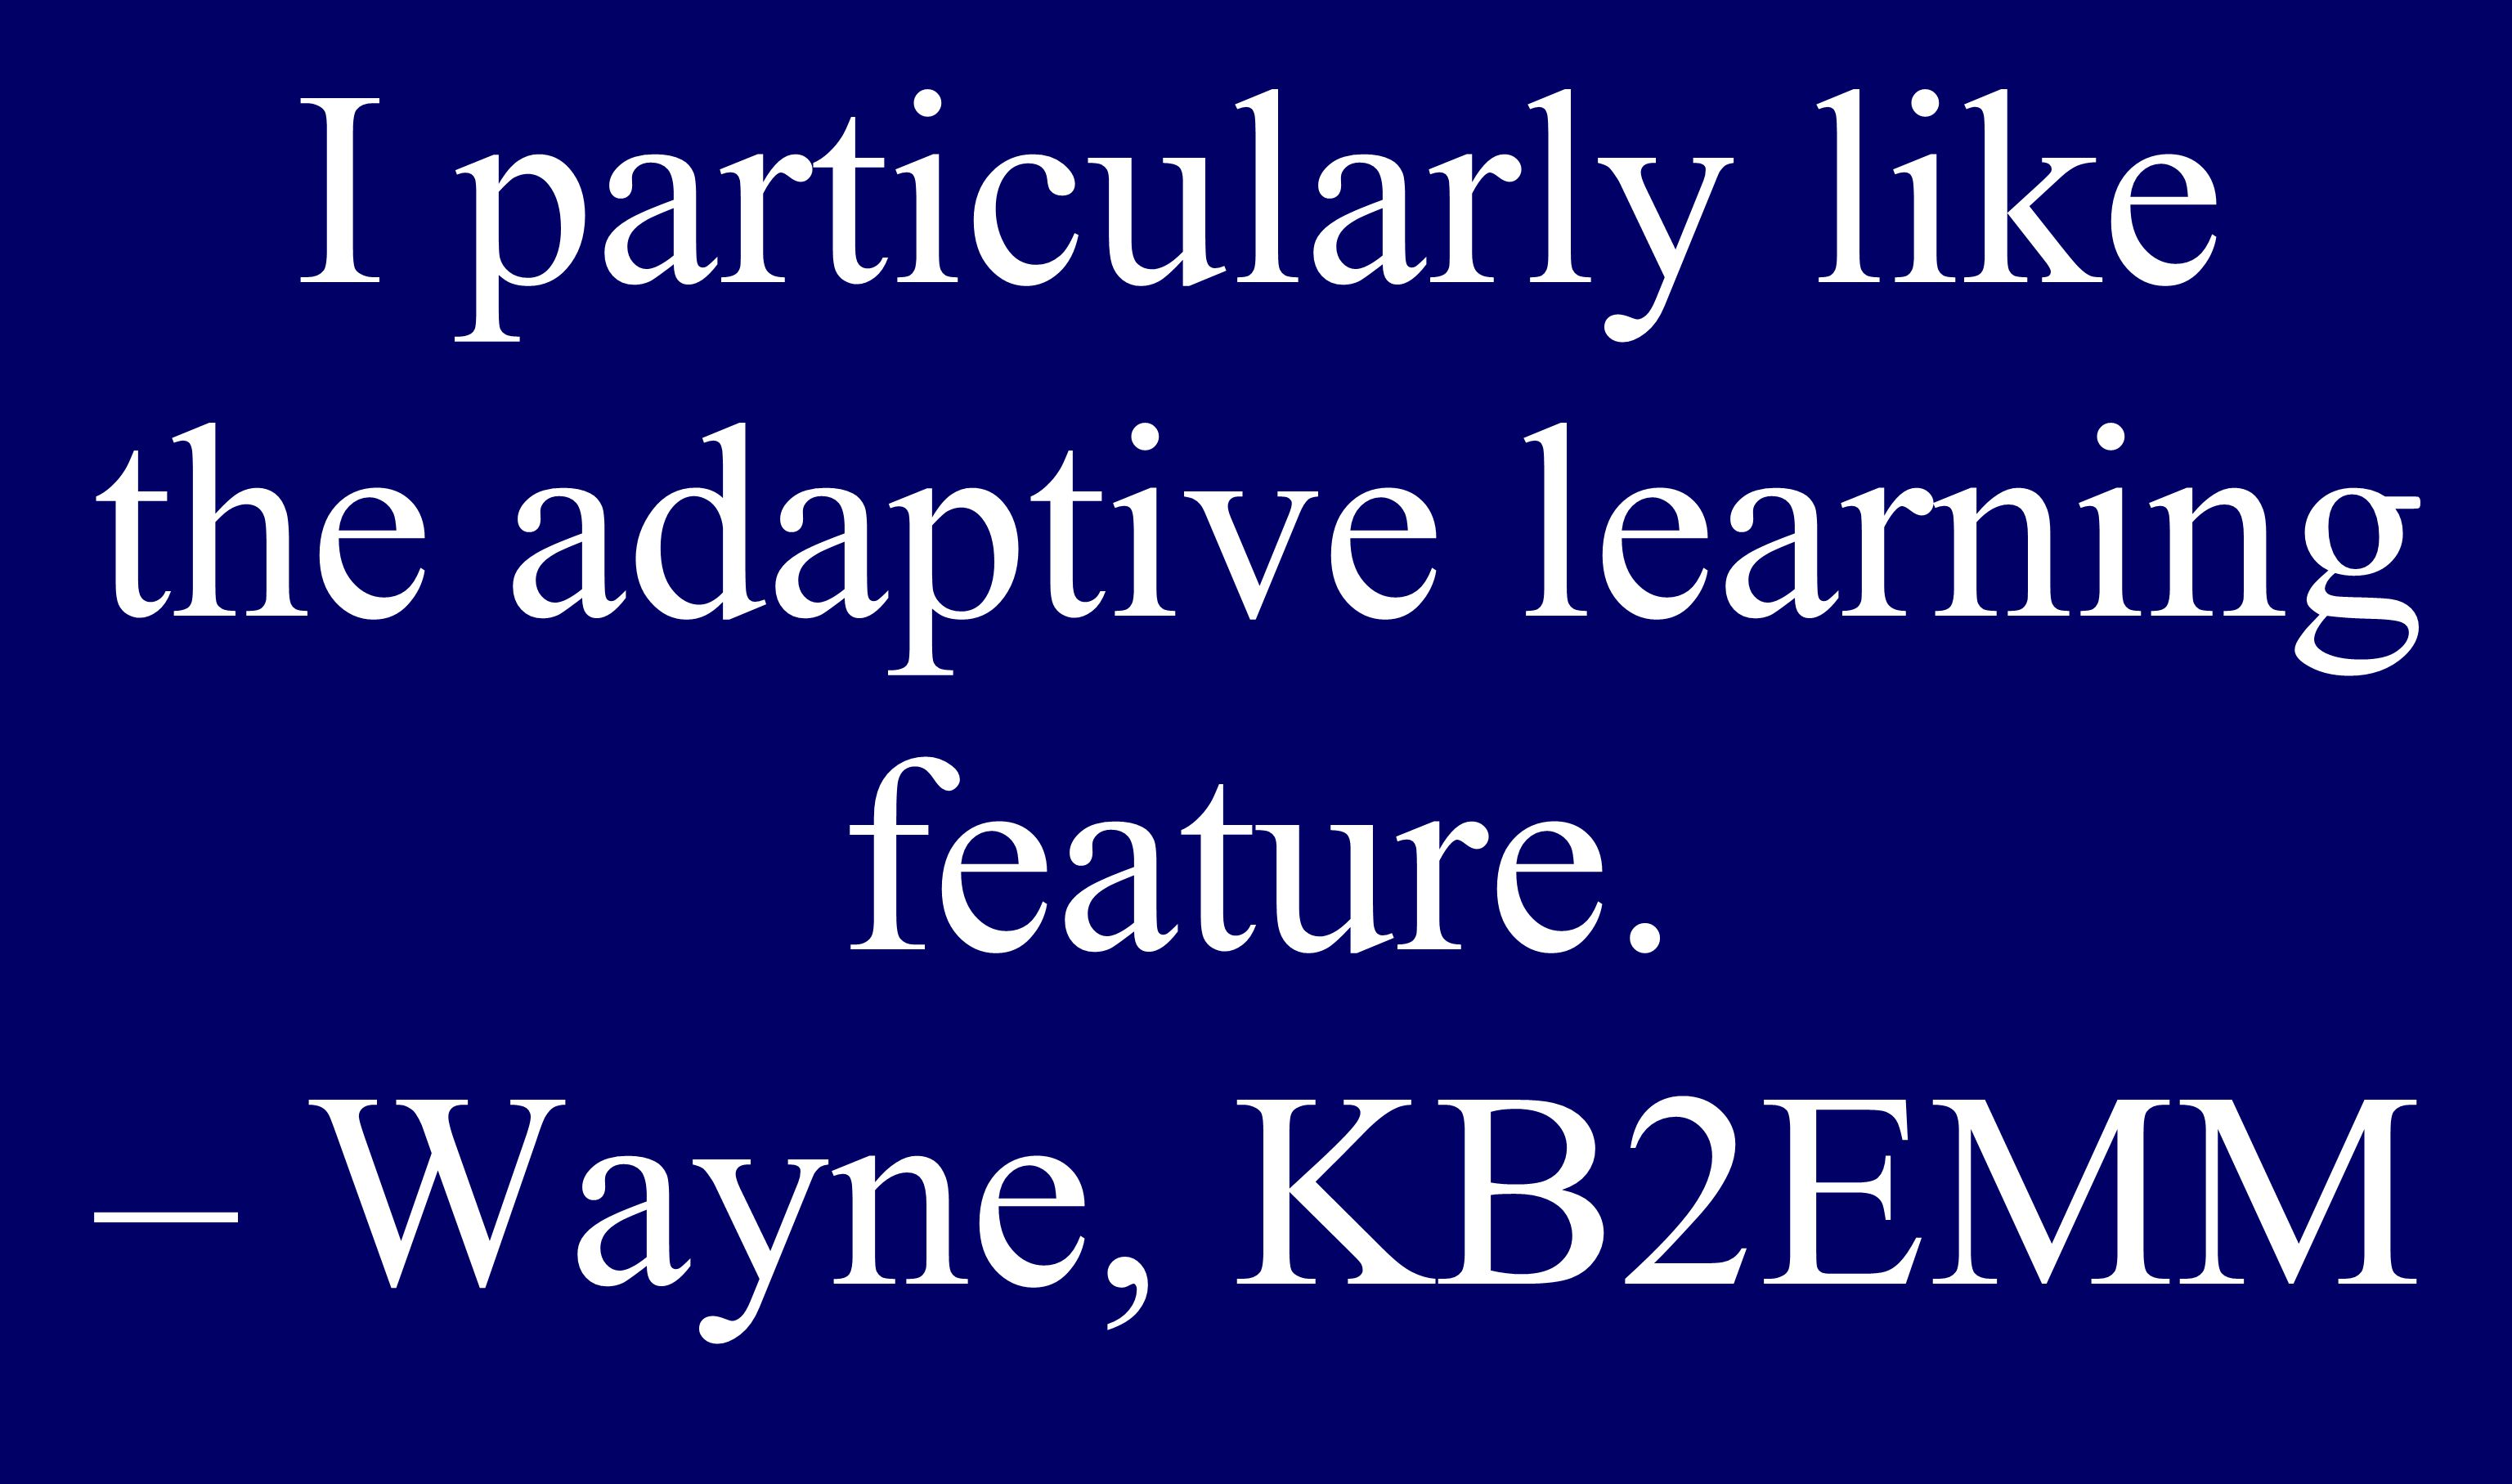 I particularly like the adaptive learning feature. – Wayne, KB2EMM